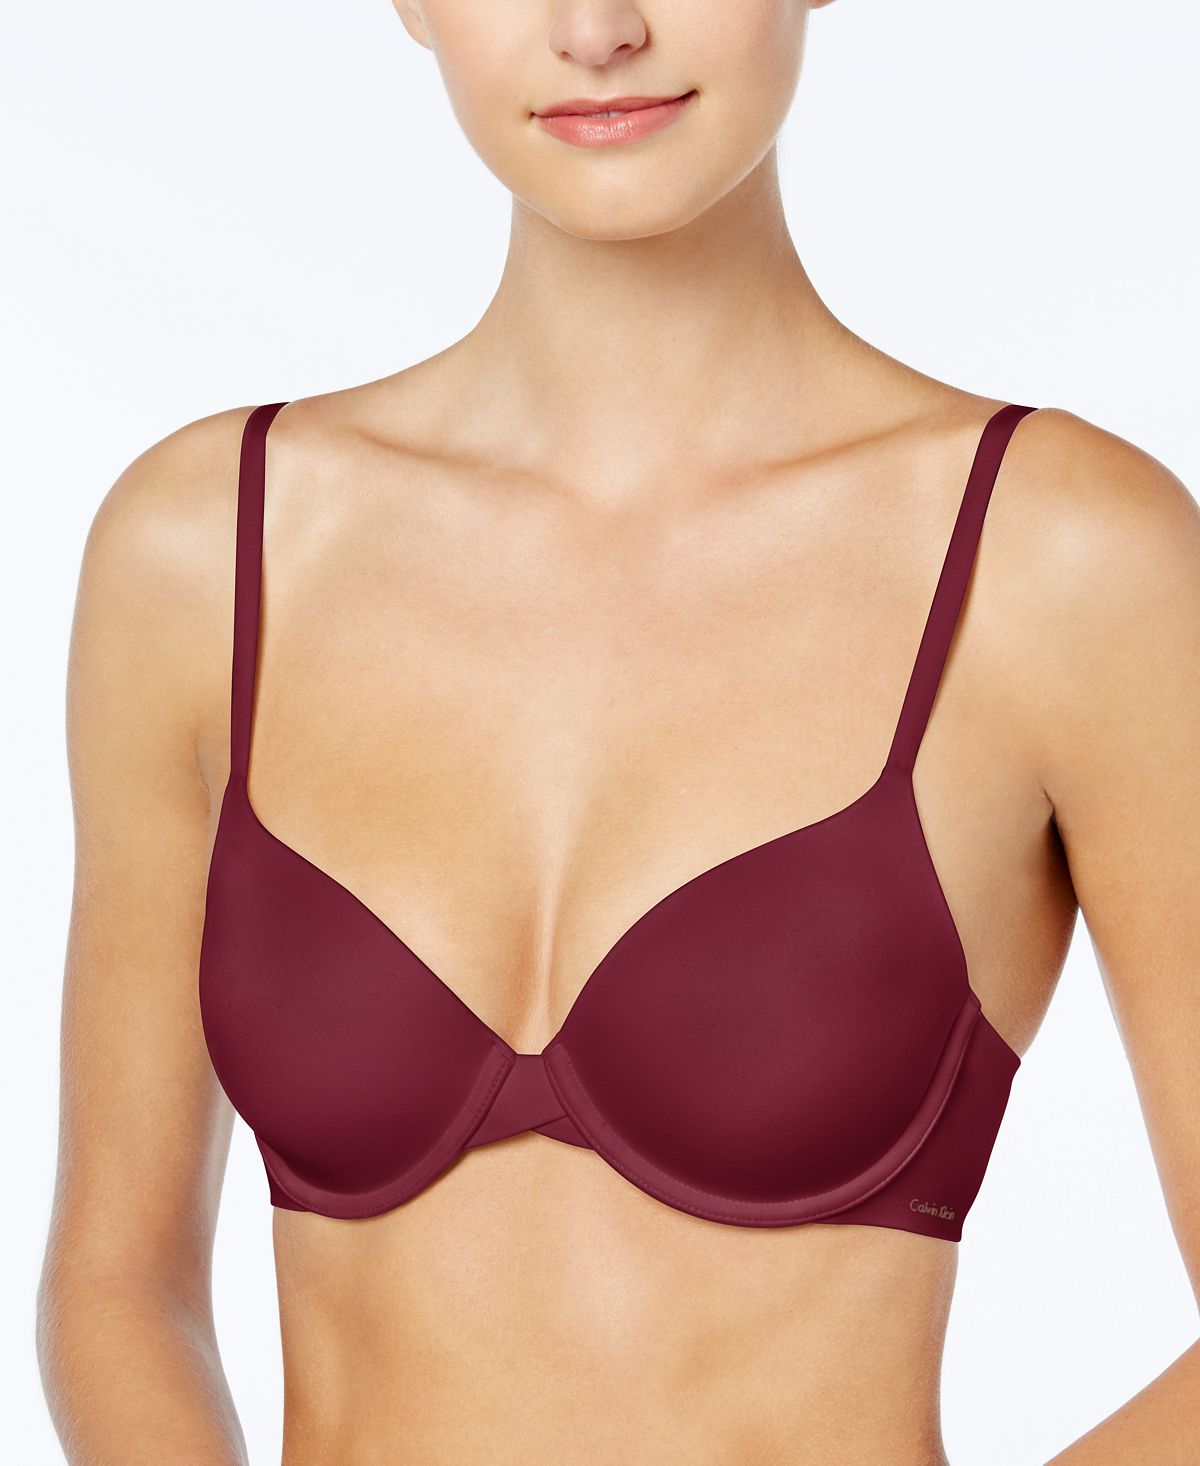 Calvin Klein Perfectly Fit Full Coverage T-shirt Bra F3837 Raspberry Jam